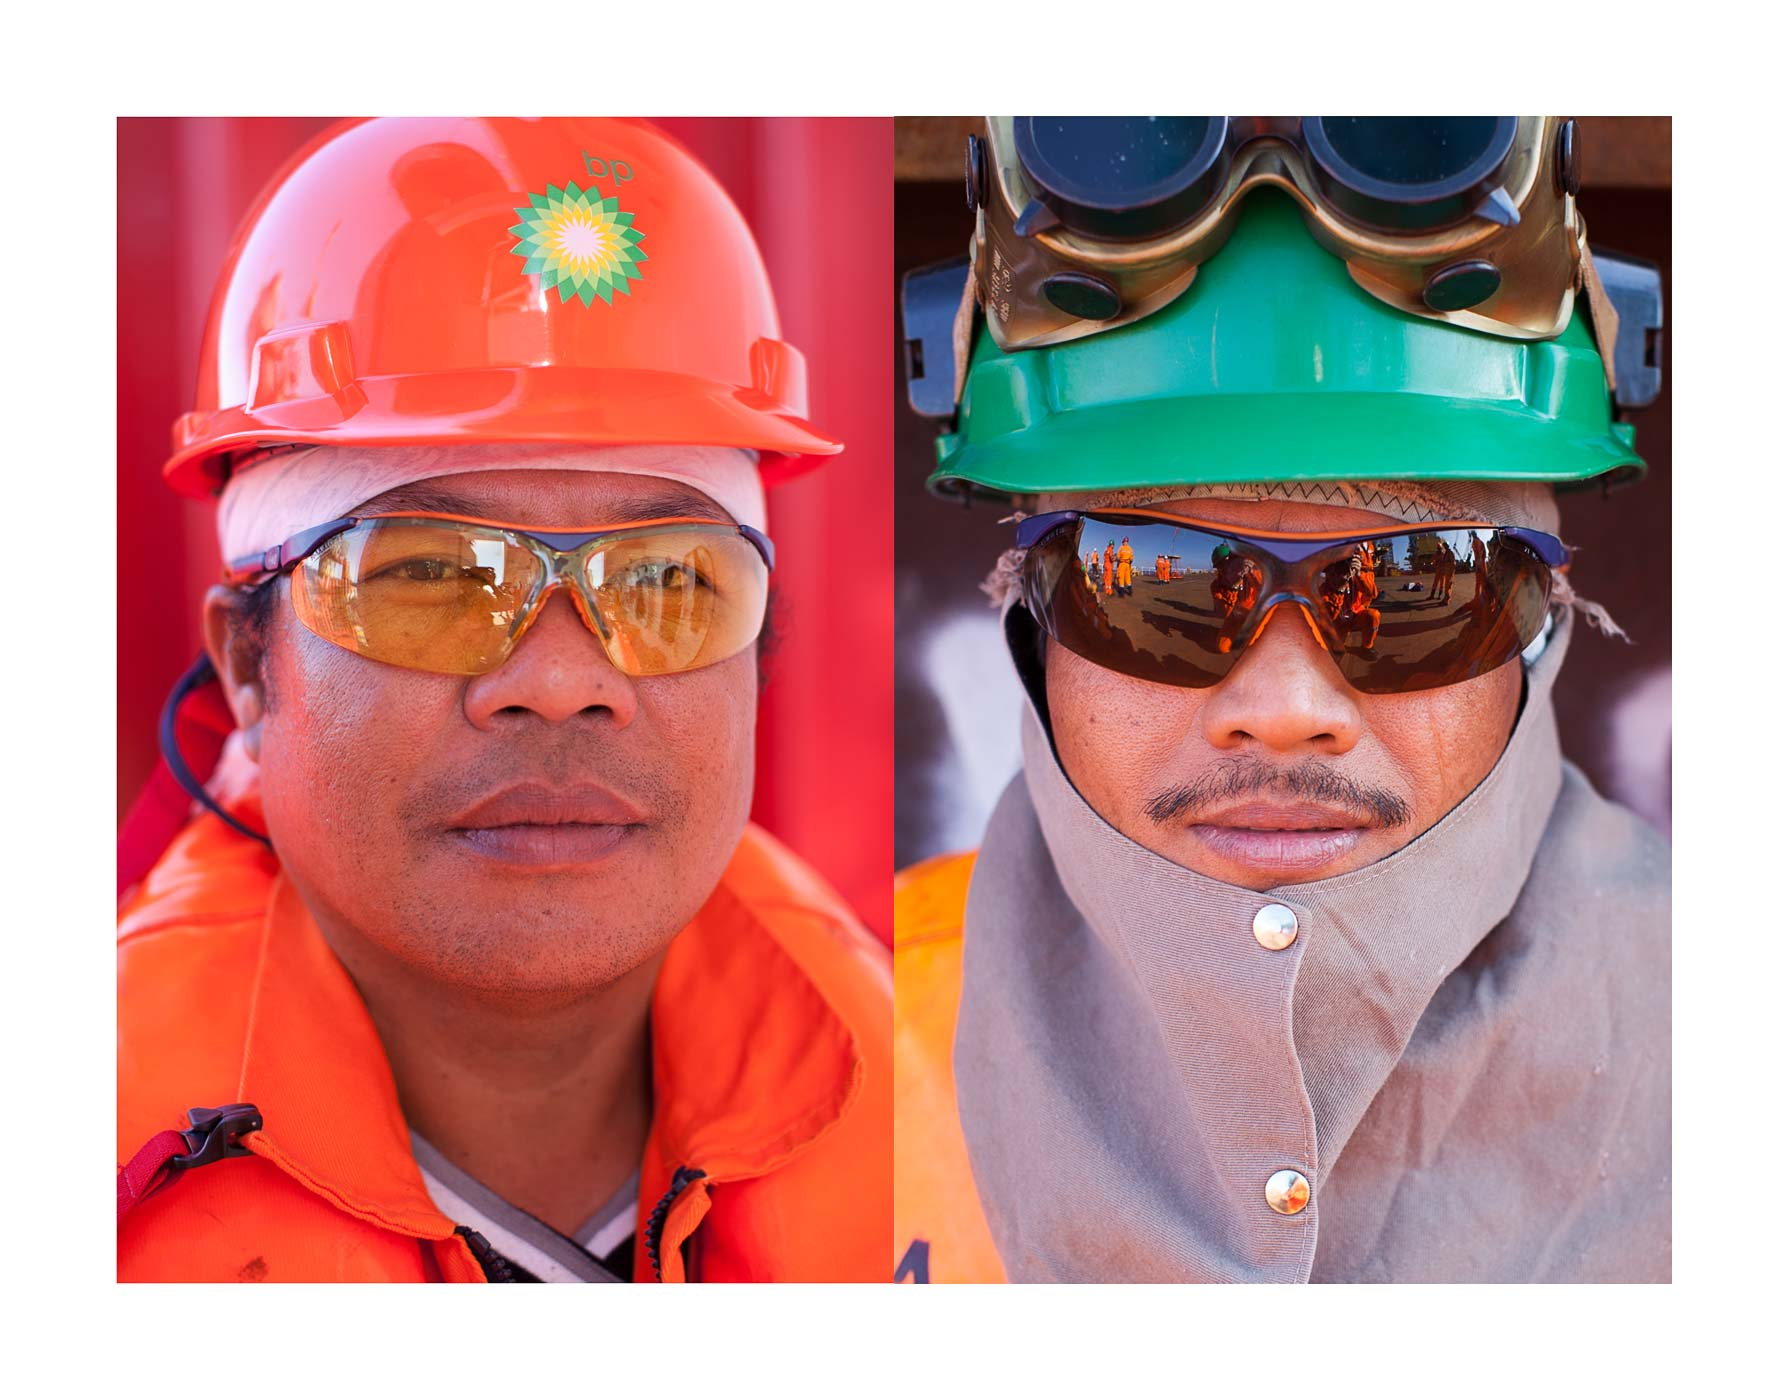 WORKERS DEEPWATER VESSEL ASIAN PPE